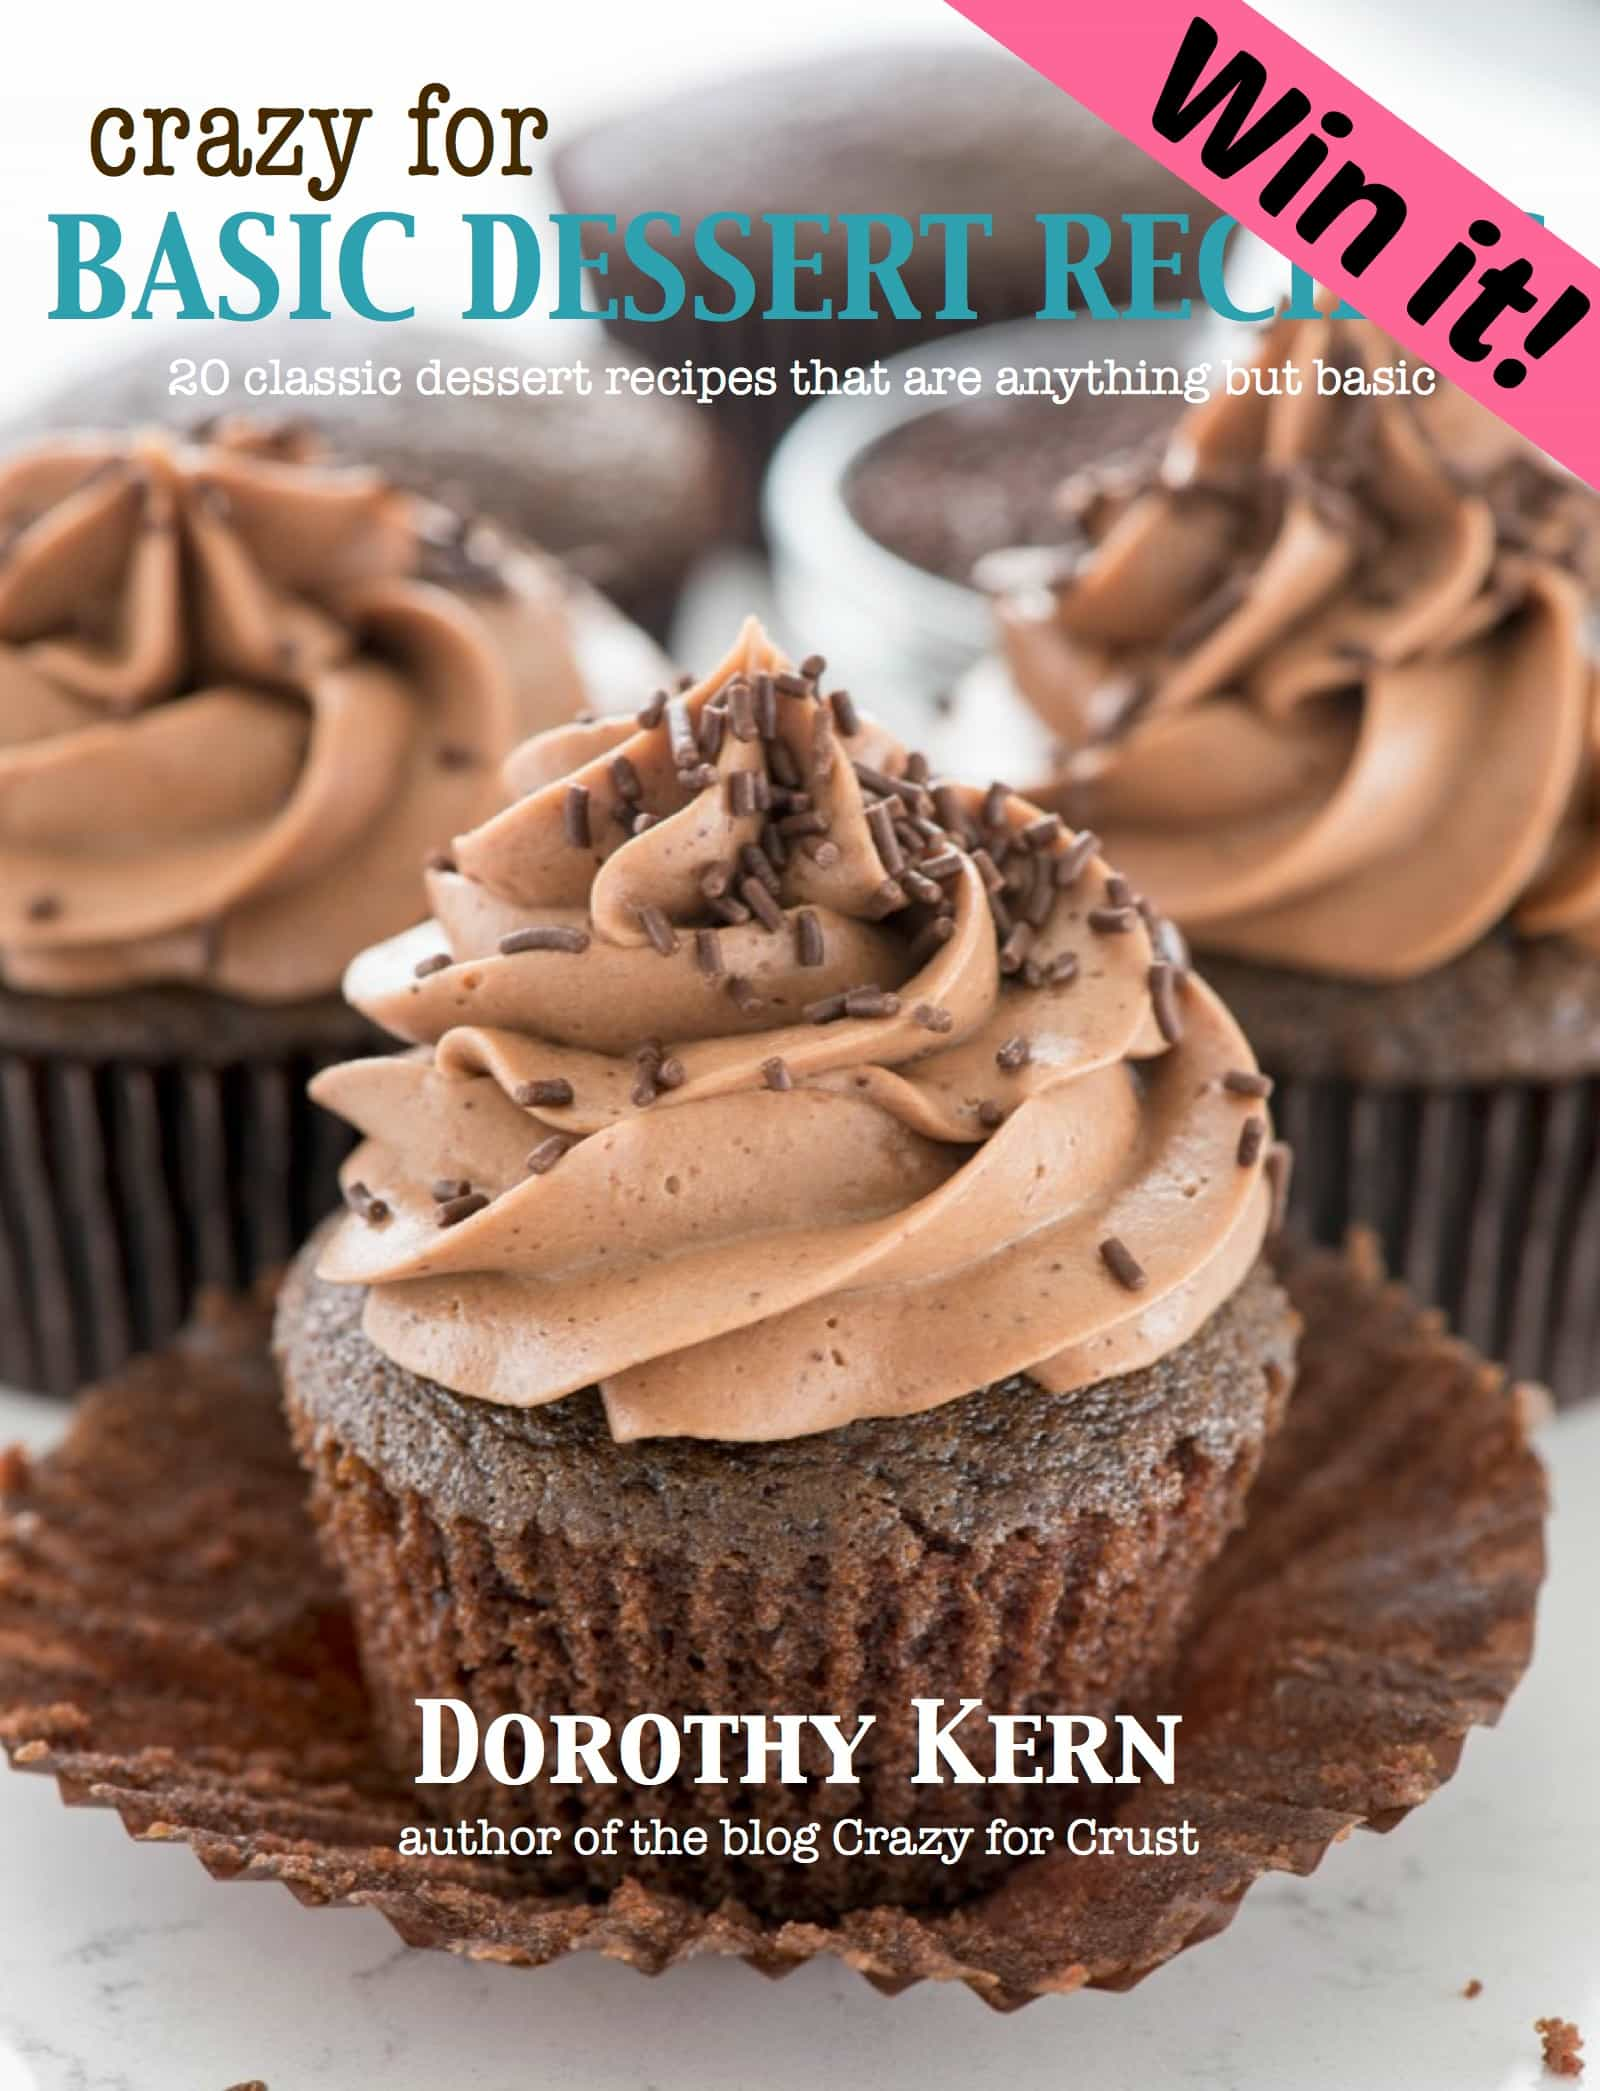 Crazy for Basic Dessert Recipes + Amazon Giveaway